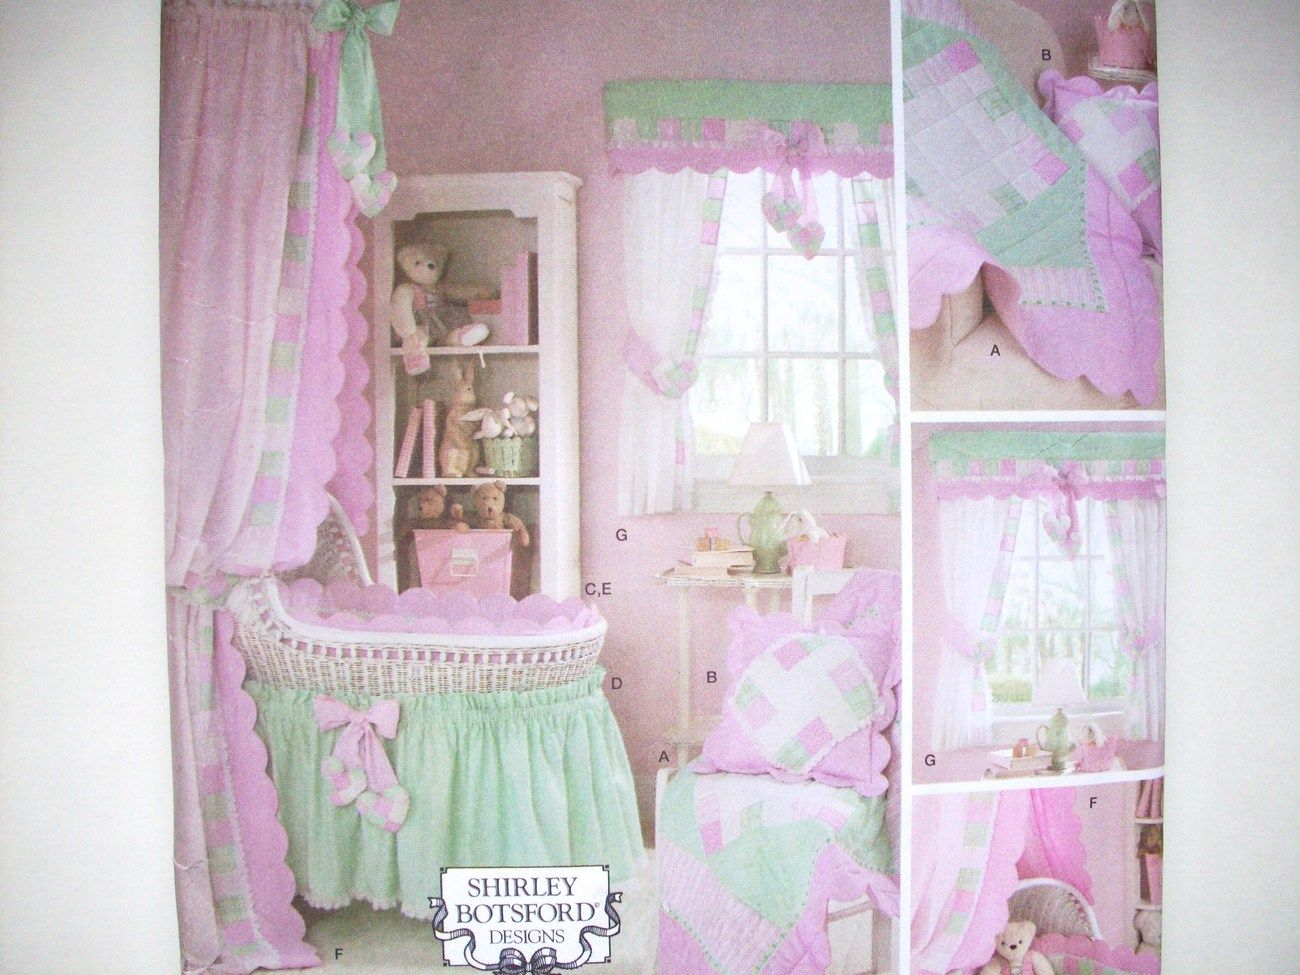 Baby bed accessories - Simplicity 3729 Baby Nursery Accessories Crib Bassinet Sewing Pattern New